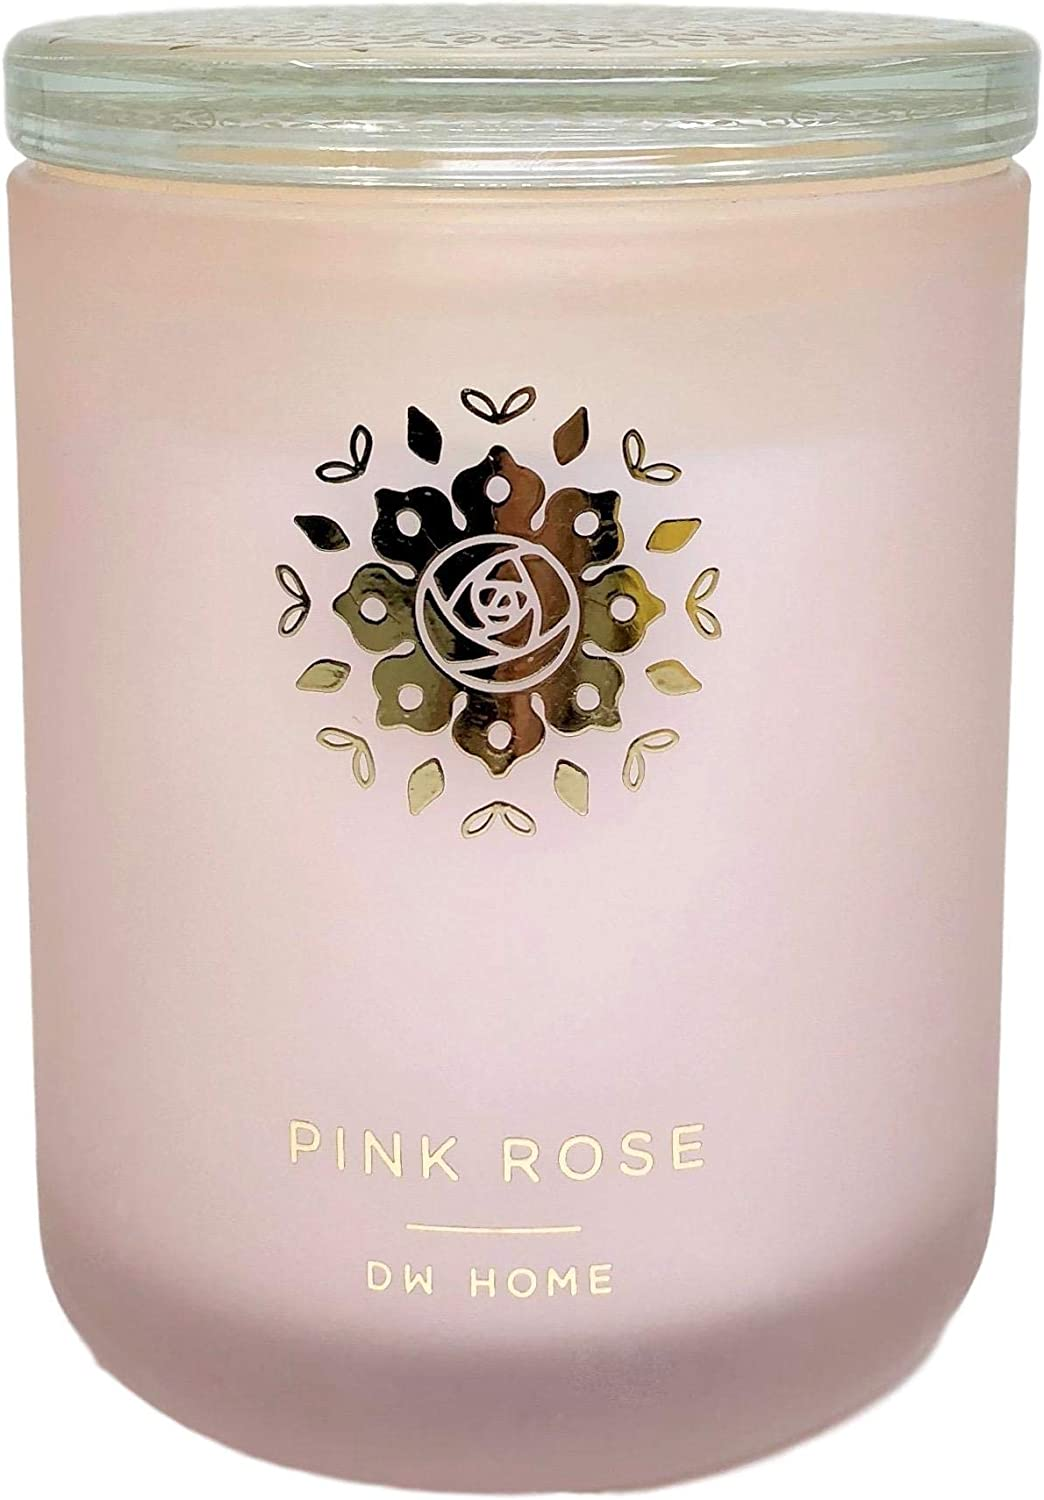 DW Home Pink Rose Scented Candle